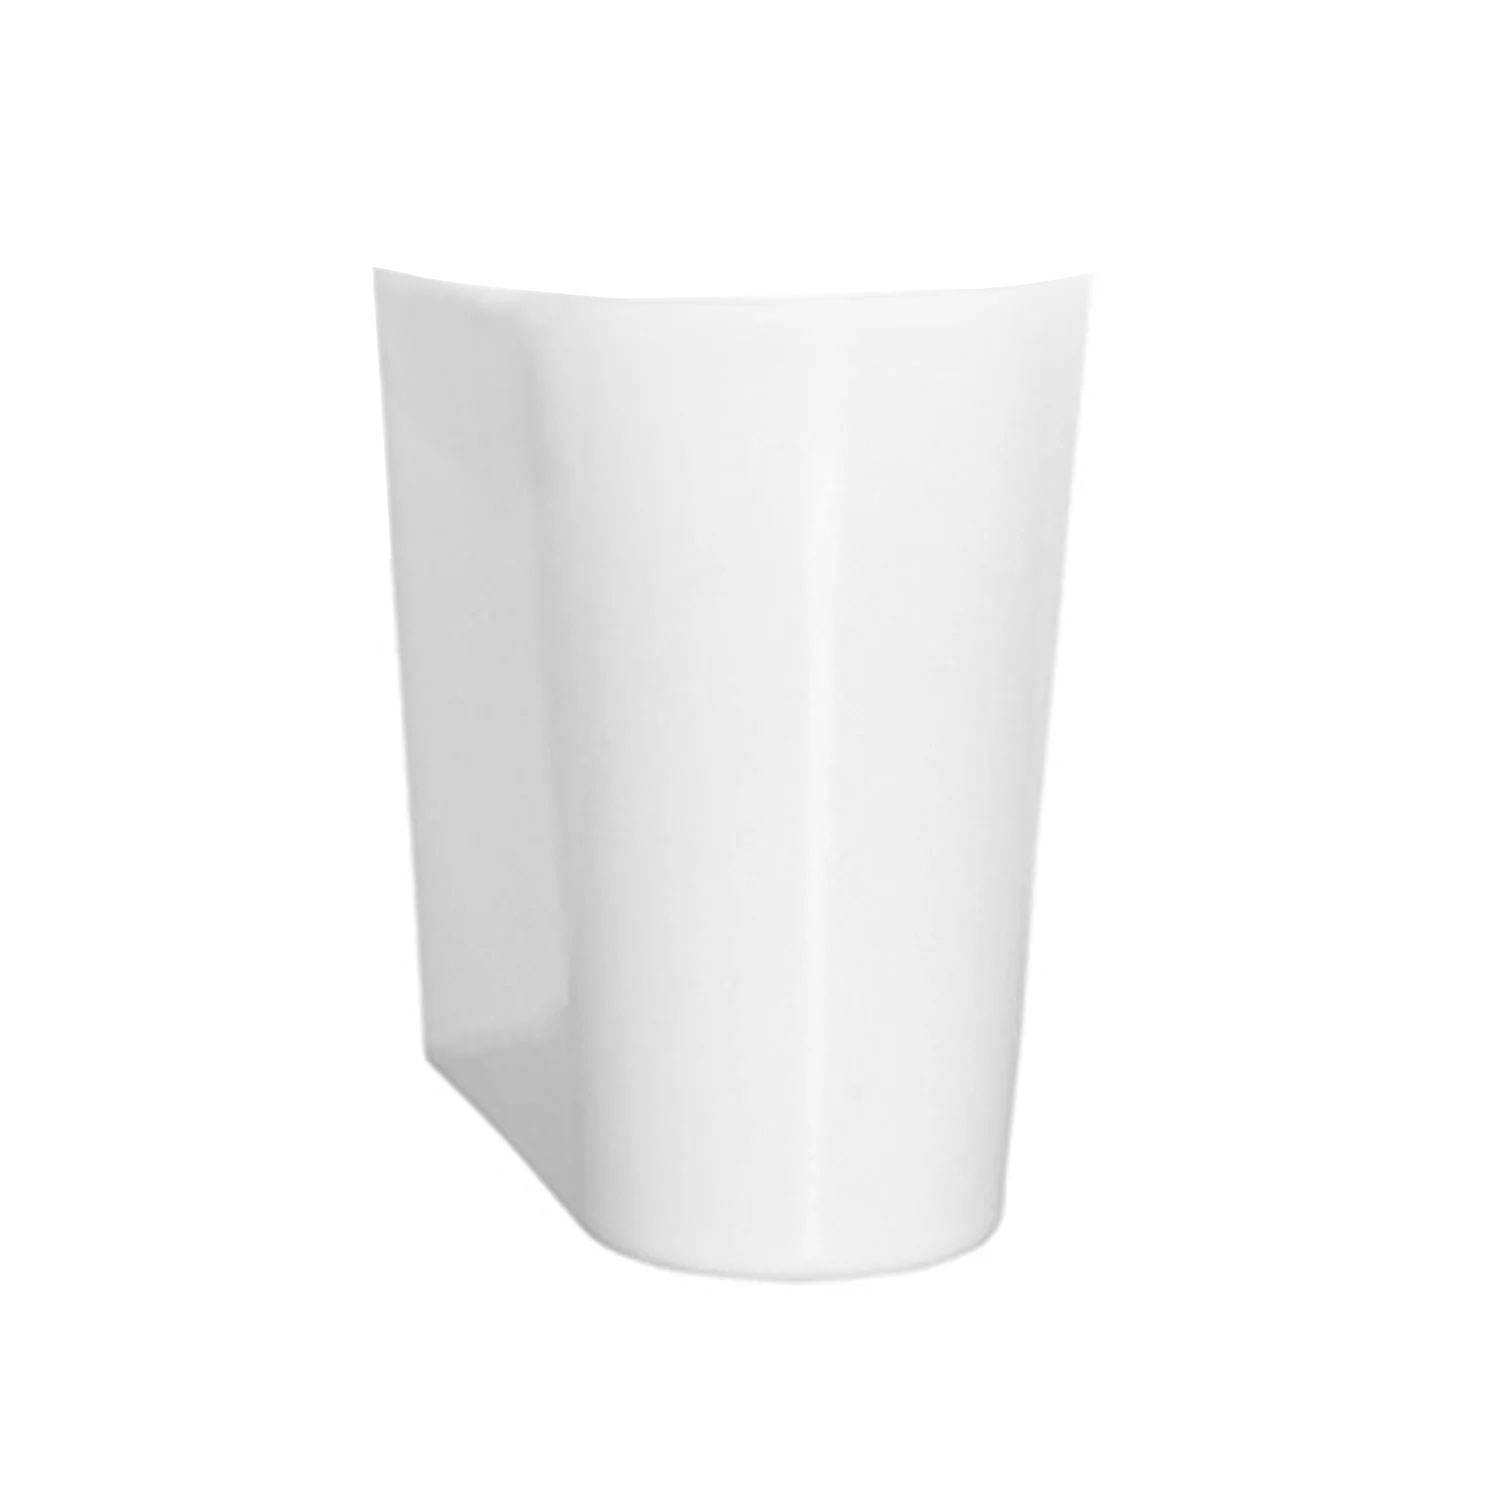 Vitra S50 Square Basin and Semi Pedestal 650mm Wide 1 Tap Hole